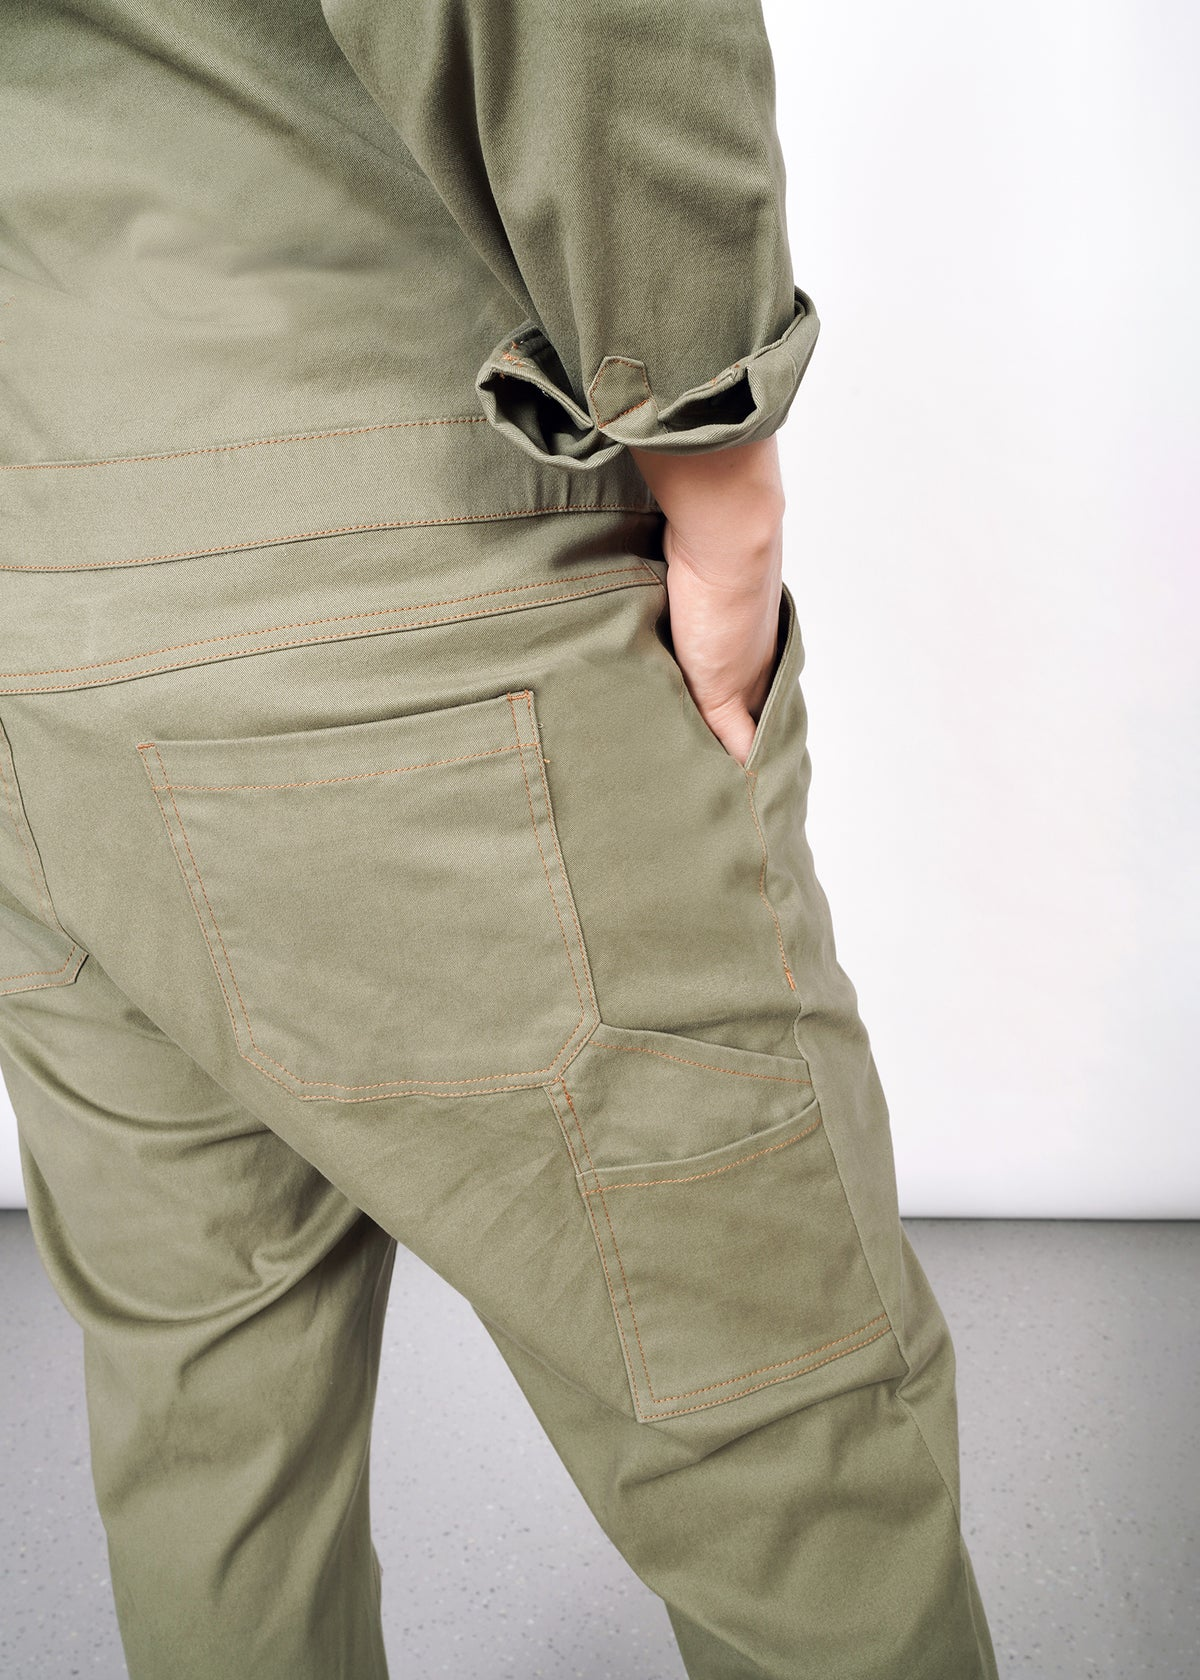 closeup of hand in front right hand pocket of olive coveralls. Shows additional side and butt pockets with orange stitching